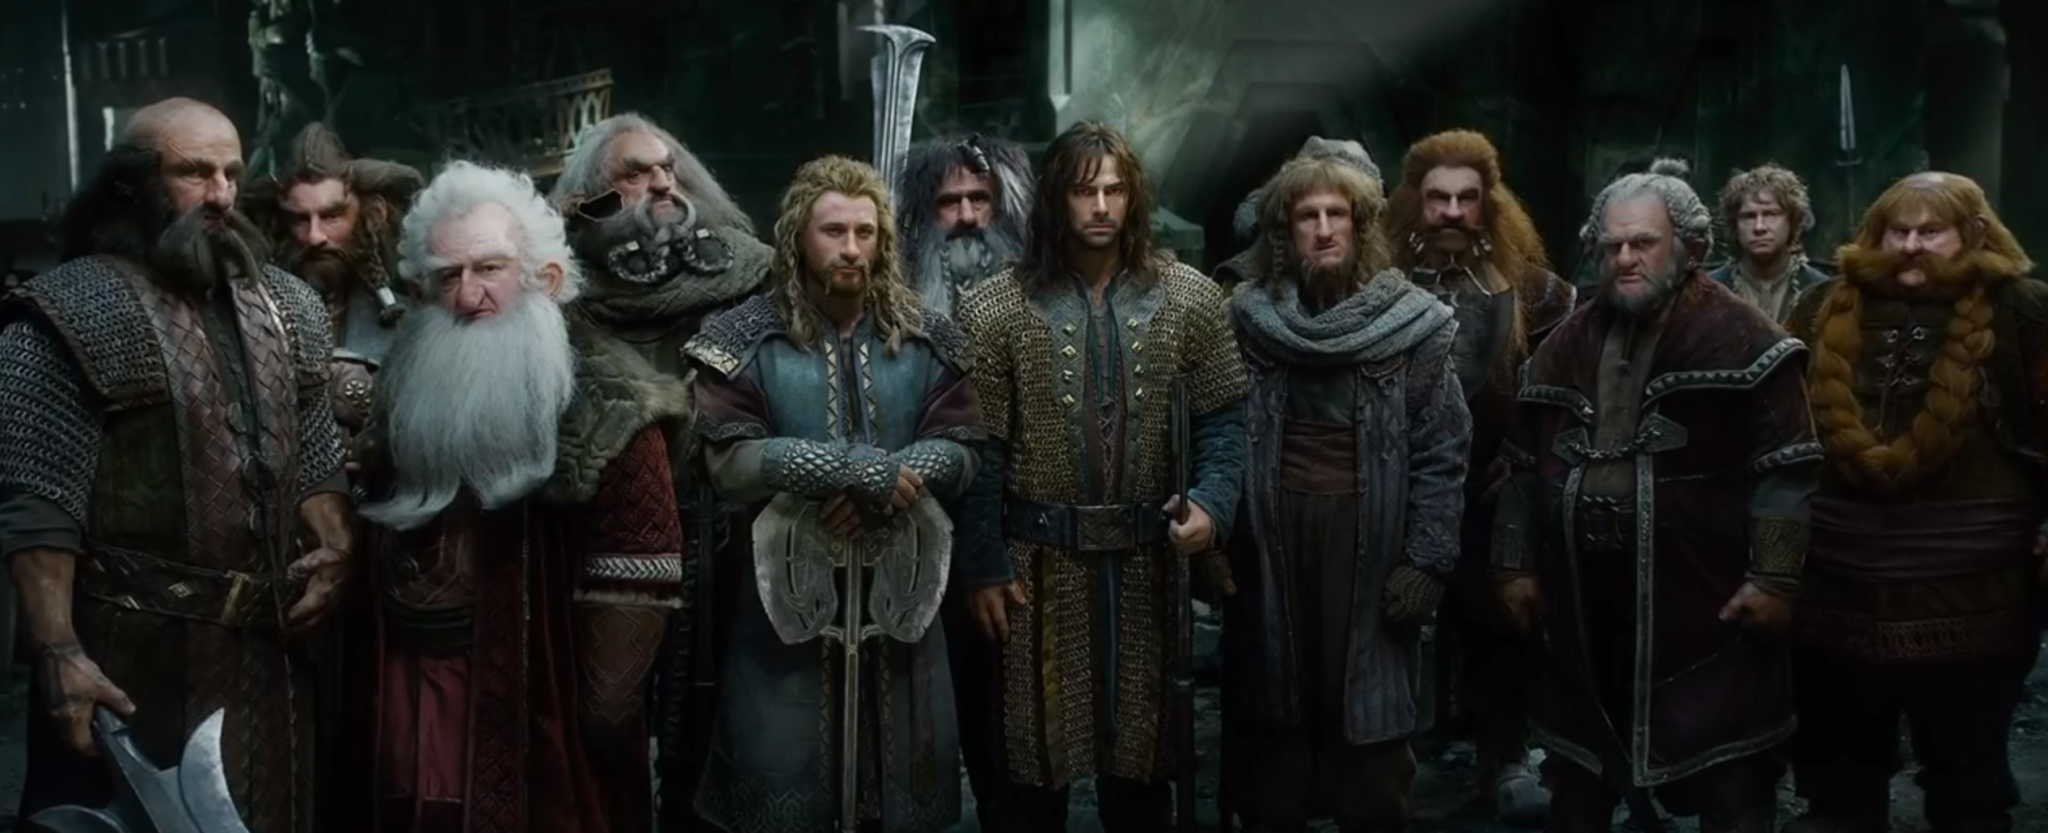 The Hobbit: The Battle of the Five Armies Trailer released.